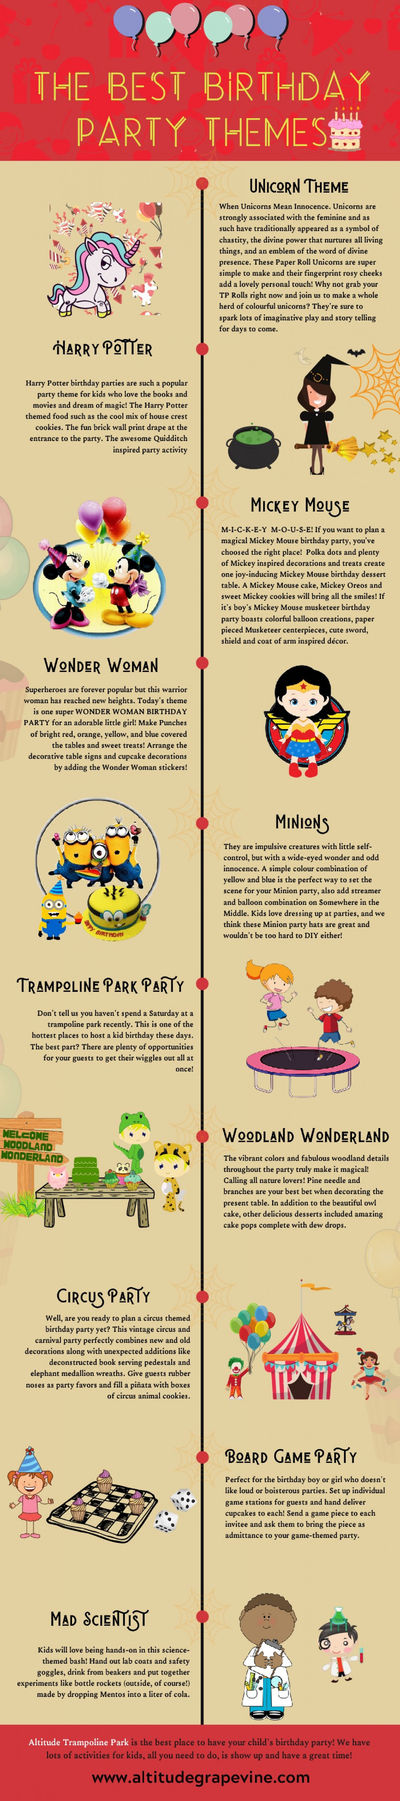 The Best Birthday Party Themes - Birthday Party Ideas